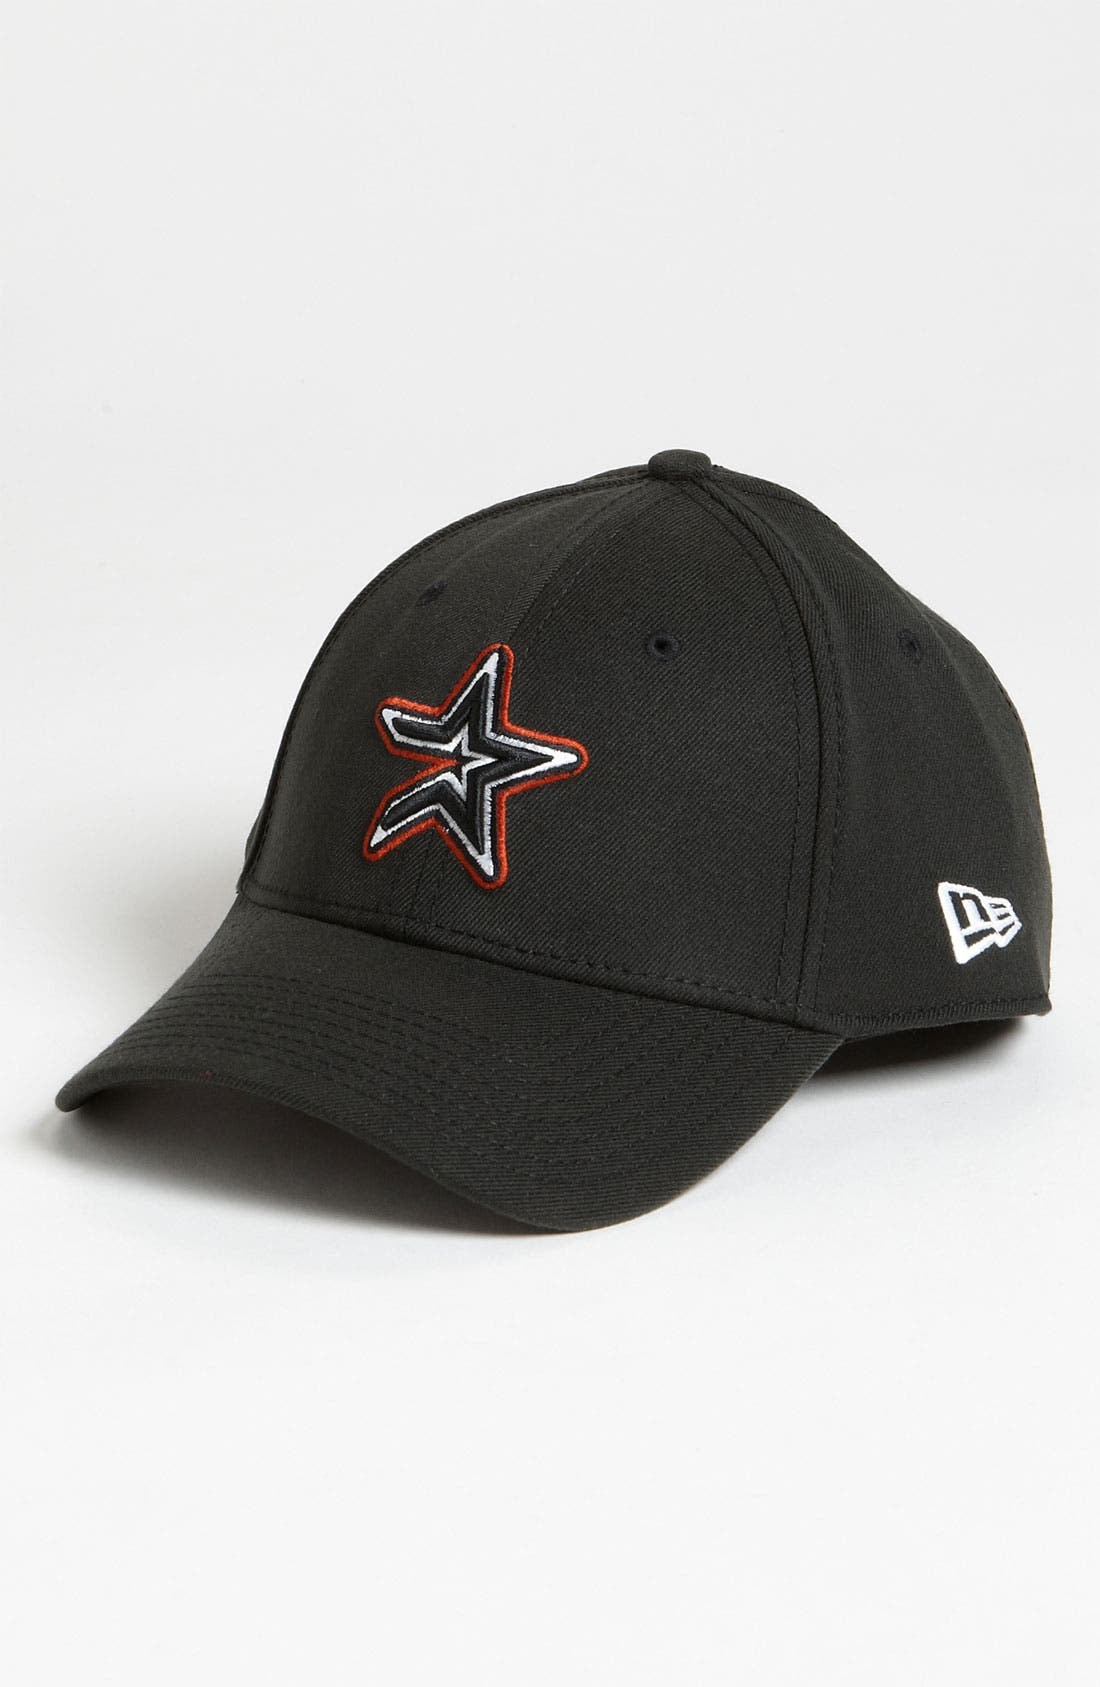 Main Image - New Era Cap 'Houston Astros' Baseball Cap